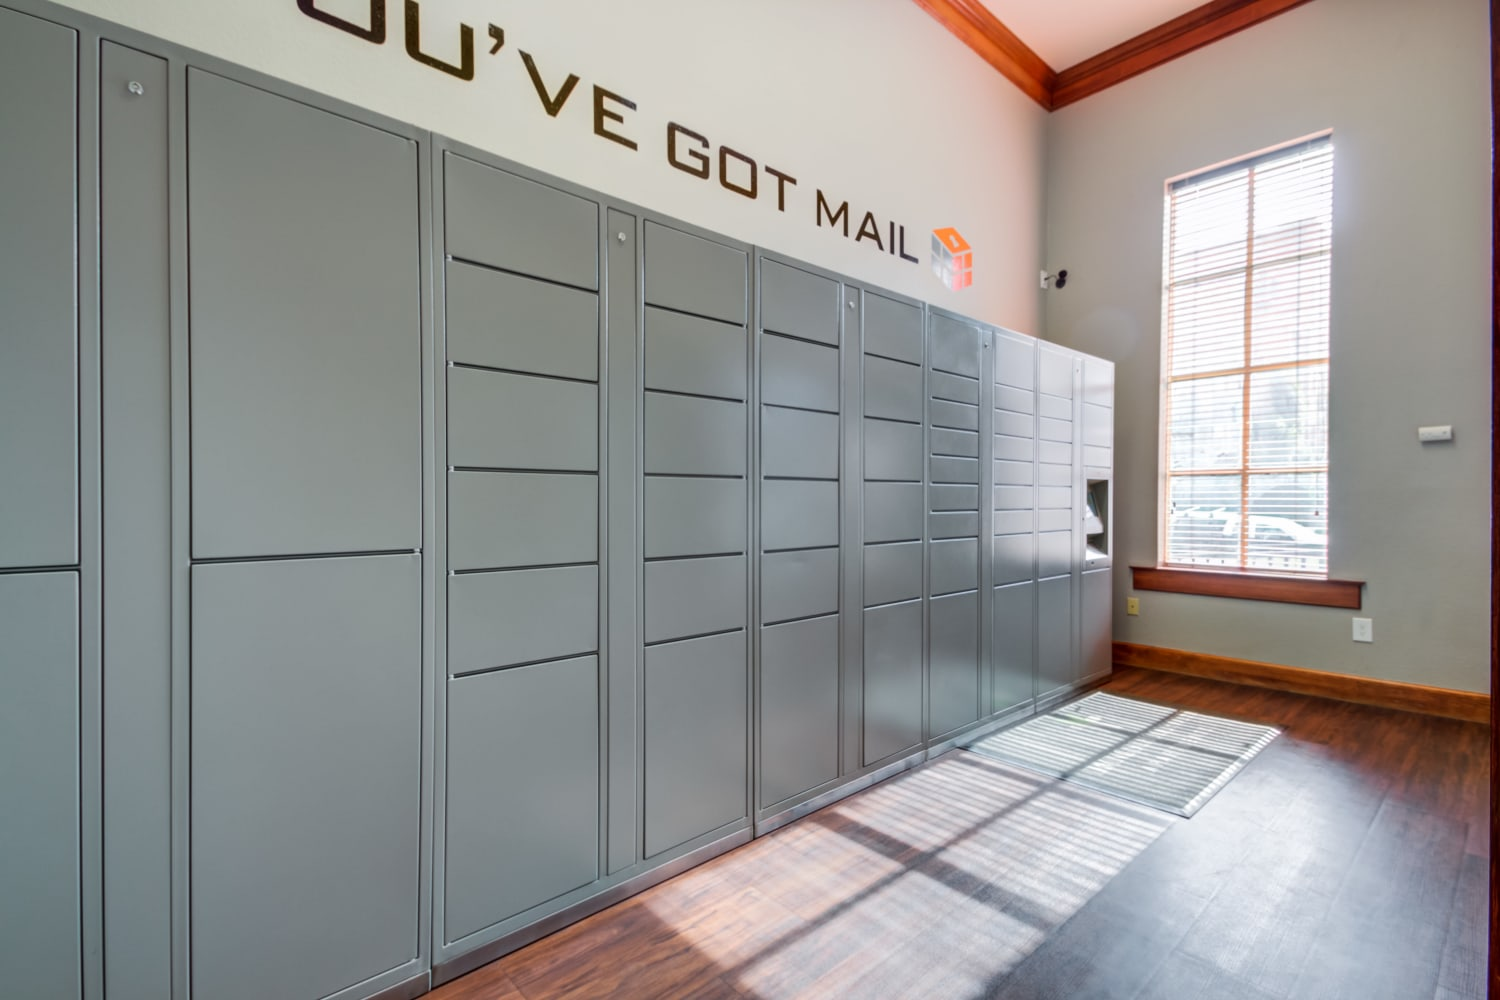 Mail room and parcel pick up center at Irving Schoolhouse Apartments in Salt Lake City, Utah